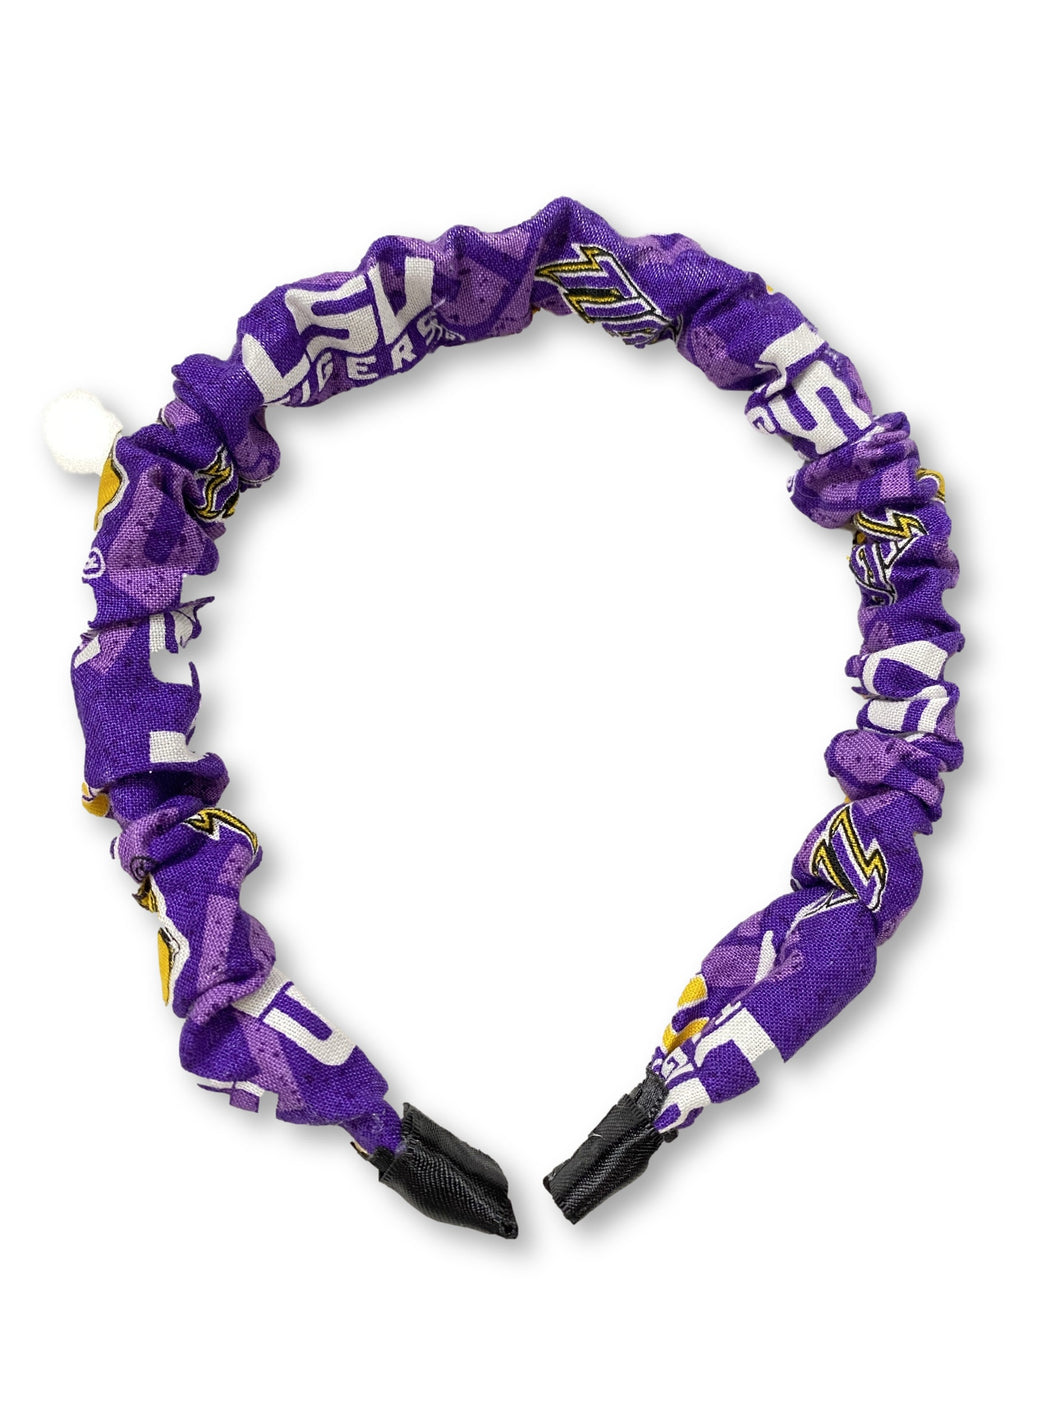 The Valentina Crinkle Headband in LSU